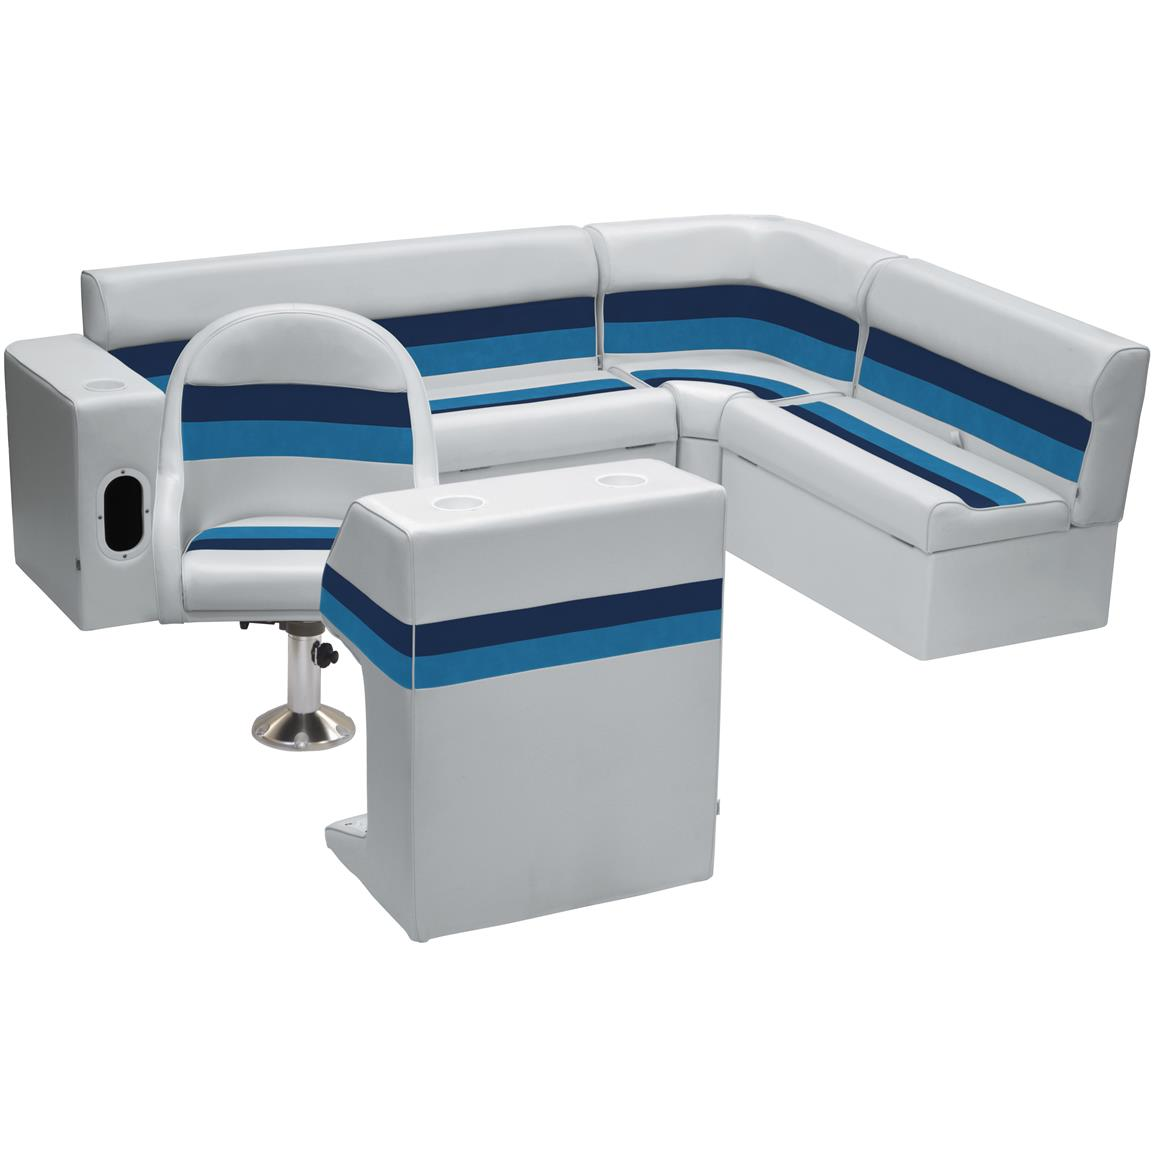 Wise® Deluxe Pontoon Complete Rear Seating Group, Color D: Light Grey / Navy / Blue